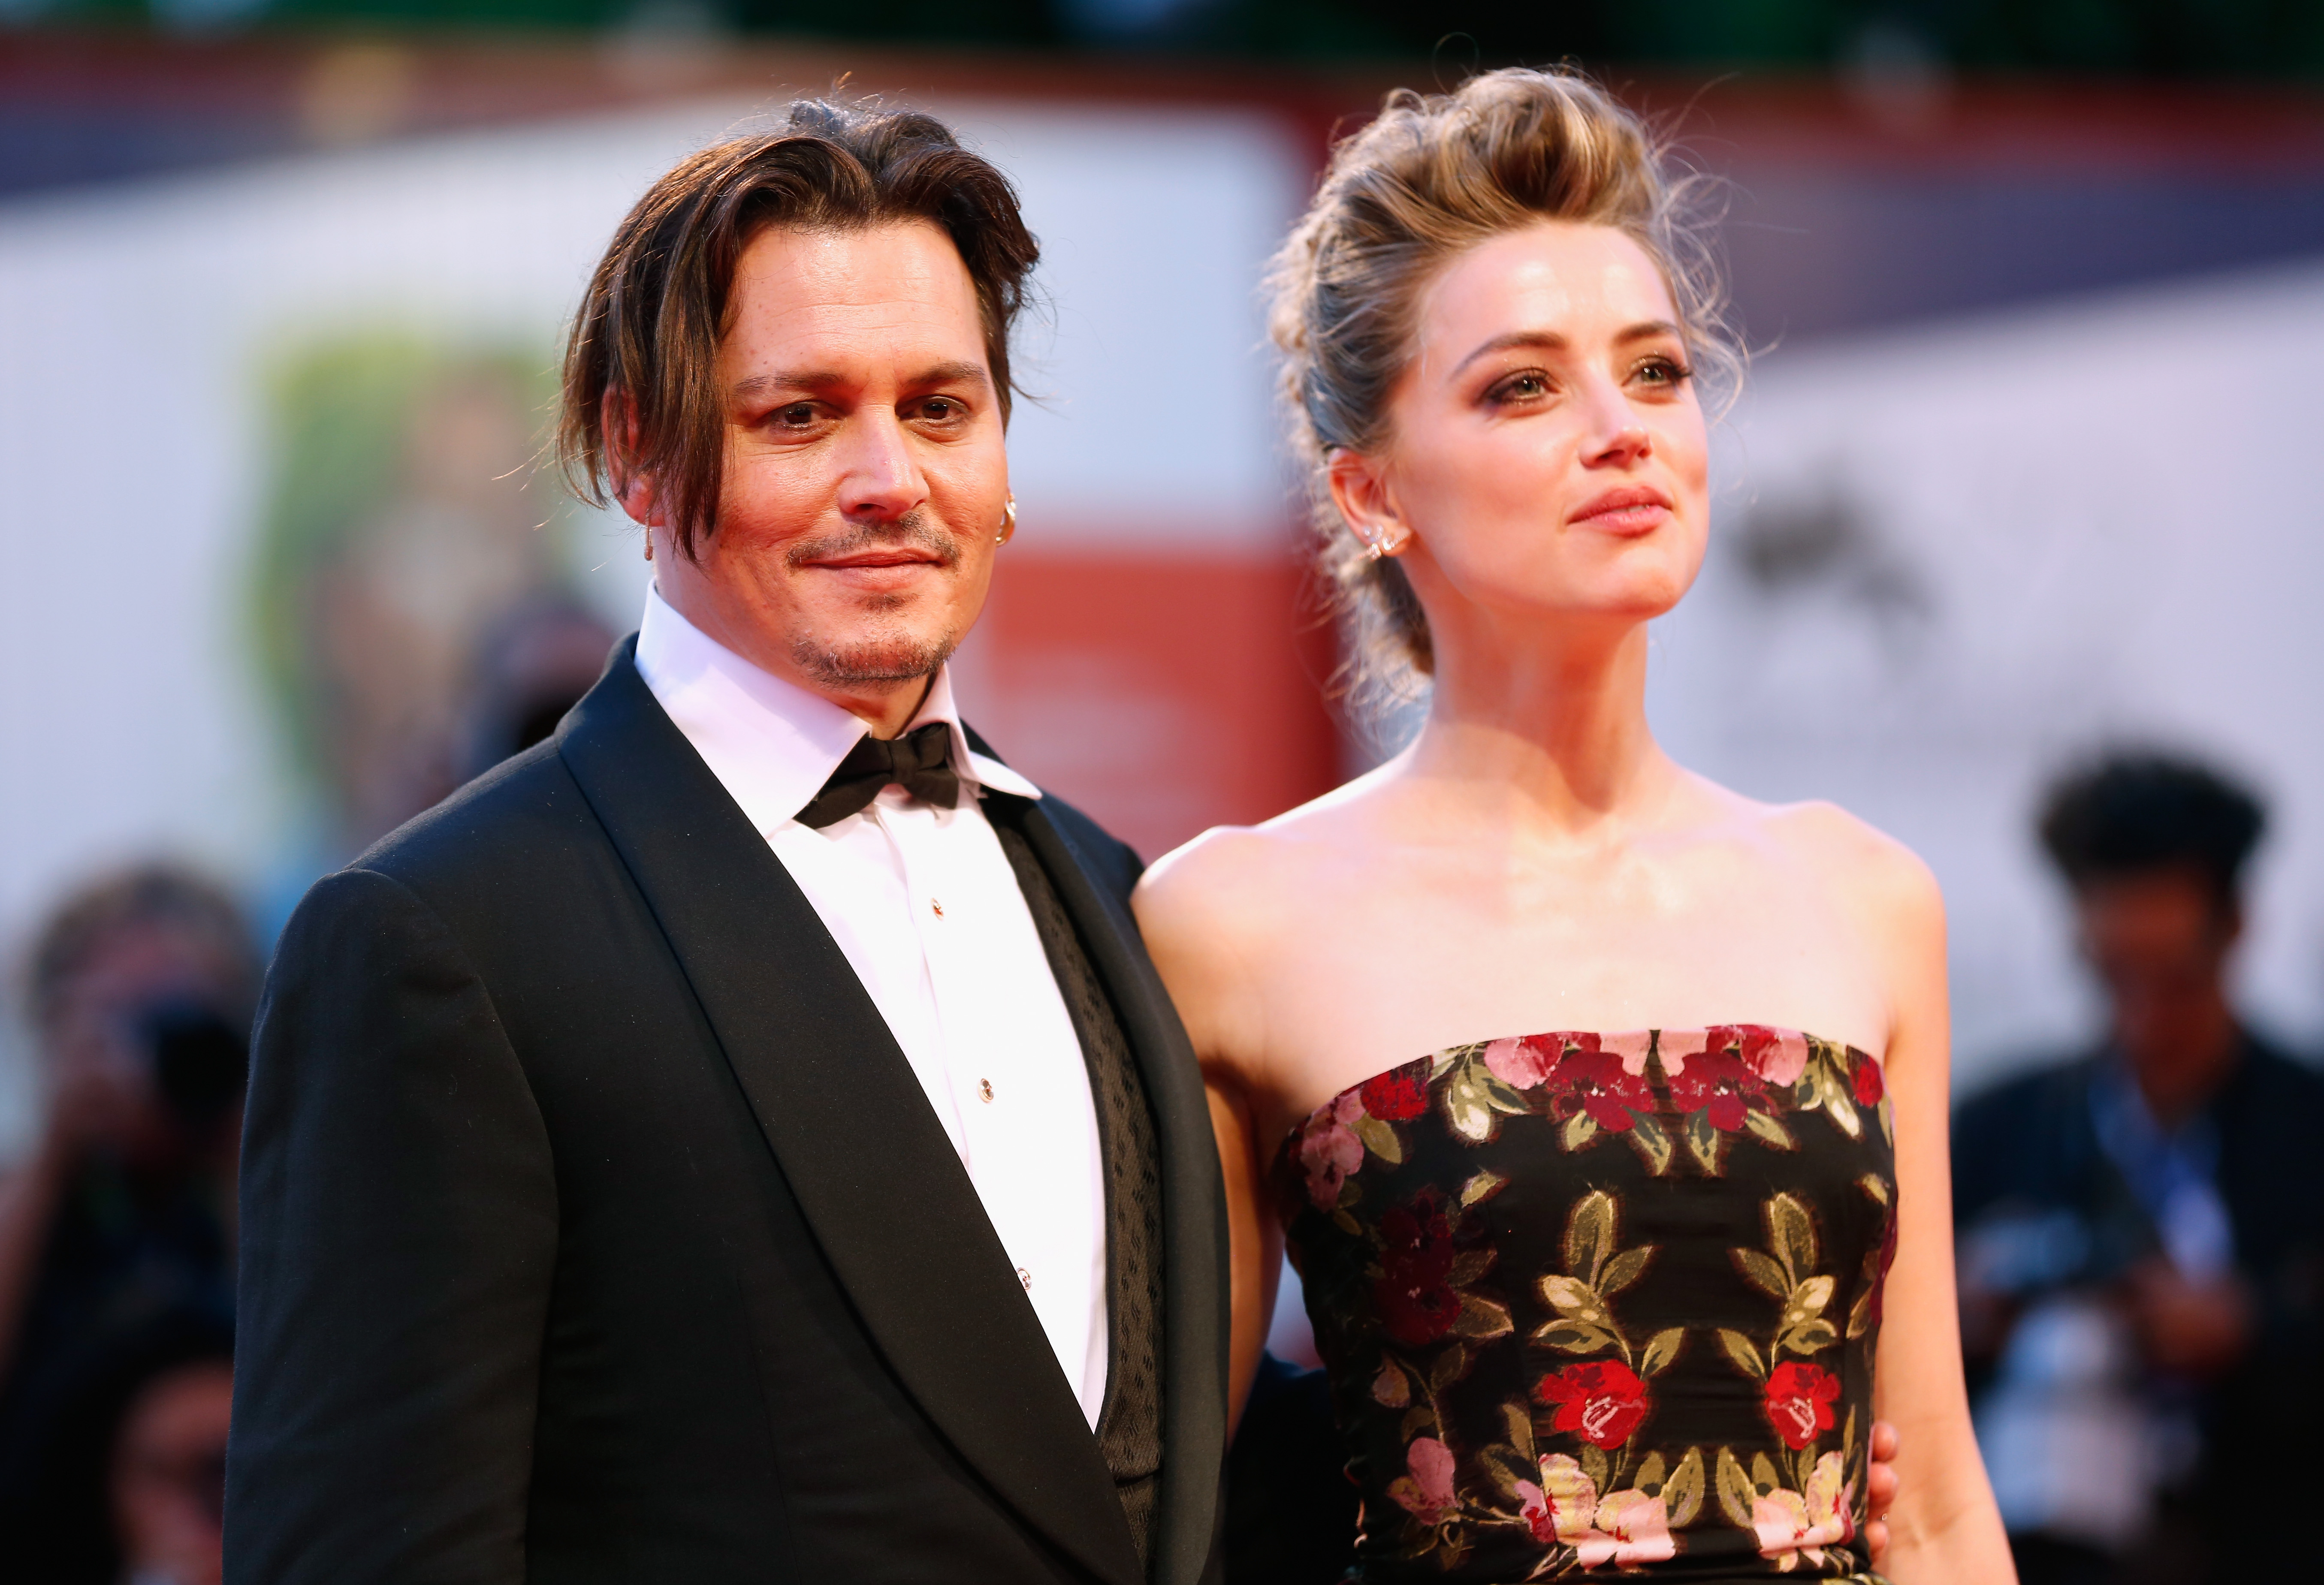 Revealing Texts From Amber Heard And Johnny Depps Assistant Leak GettyImages 487016136